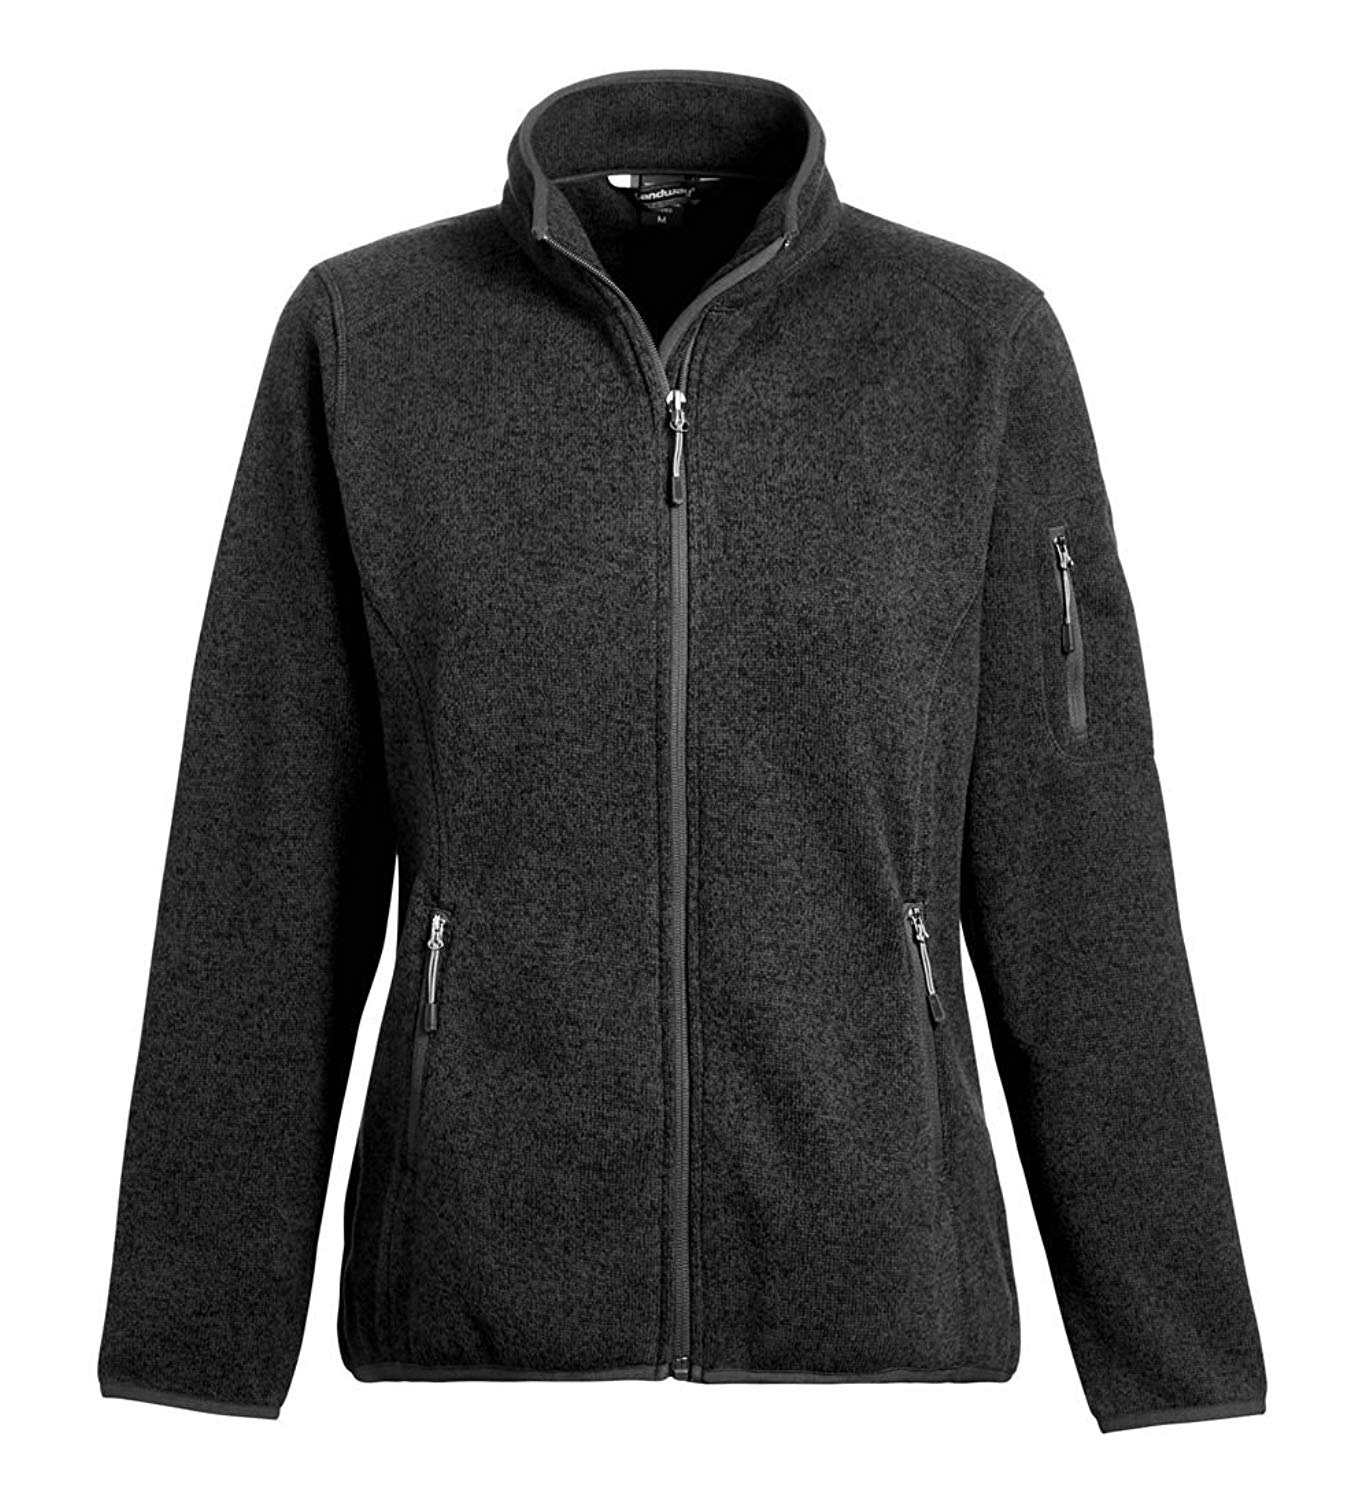 Landway Women's 2 Pockets Sweater Knit Fleece Jacket, Heather Black, X-Large